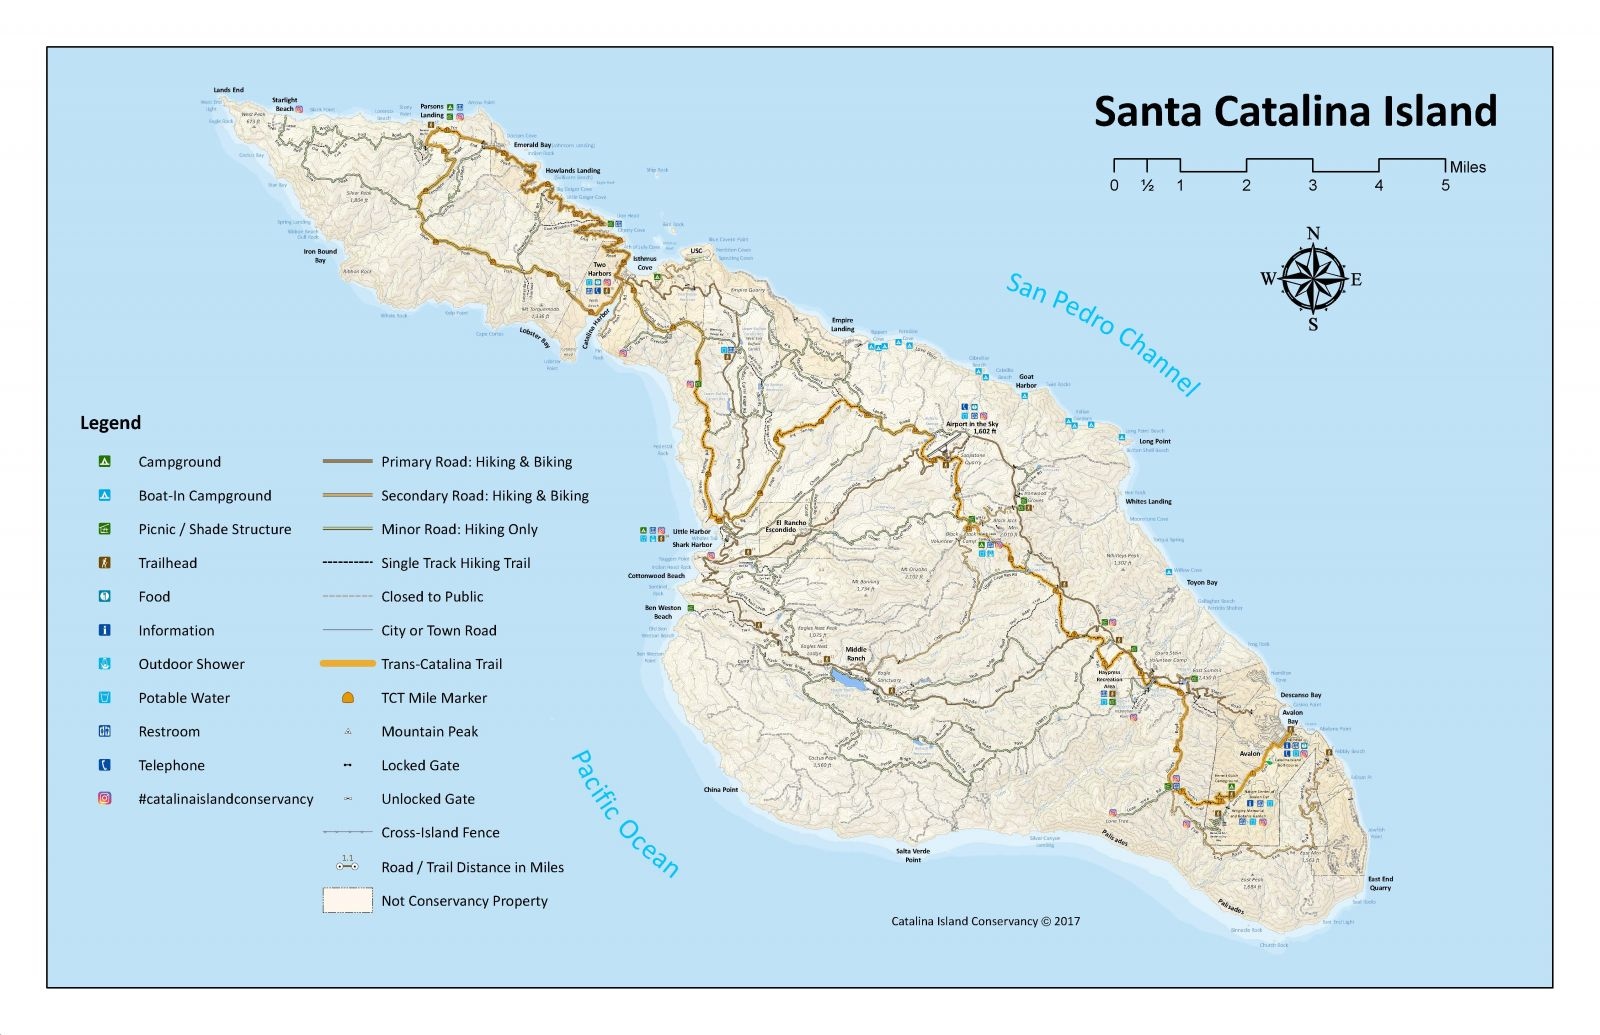 Catalina Island Conservancy